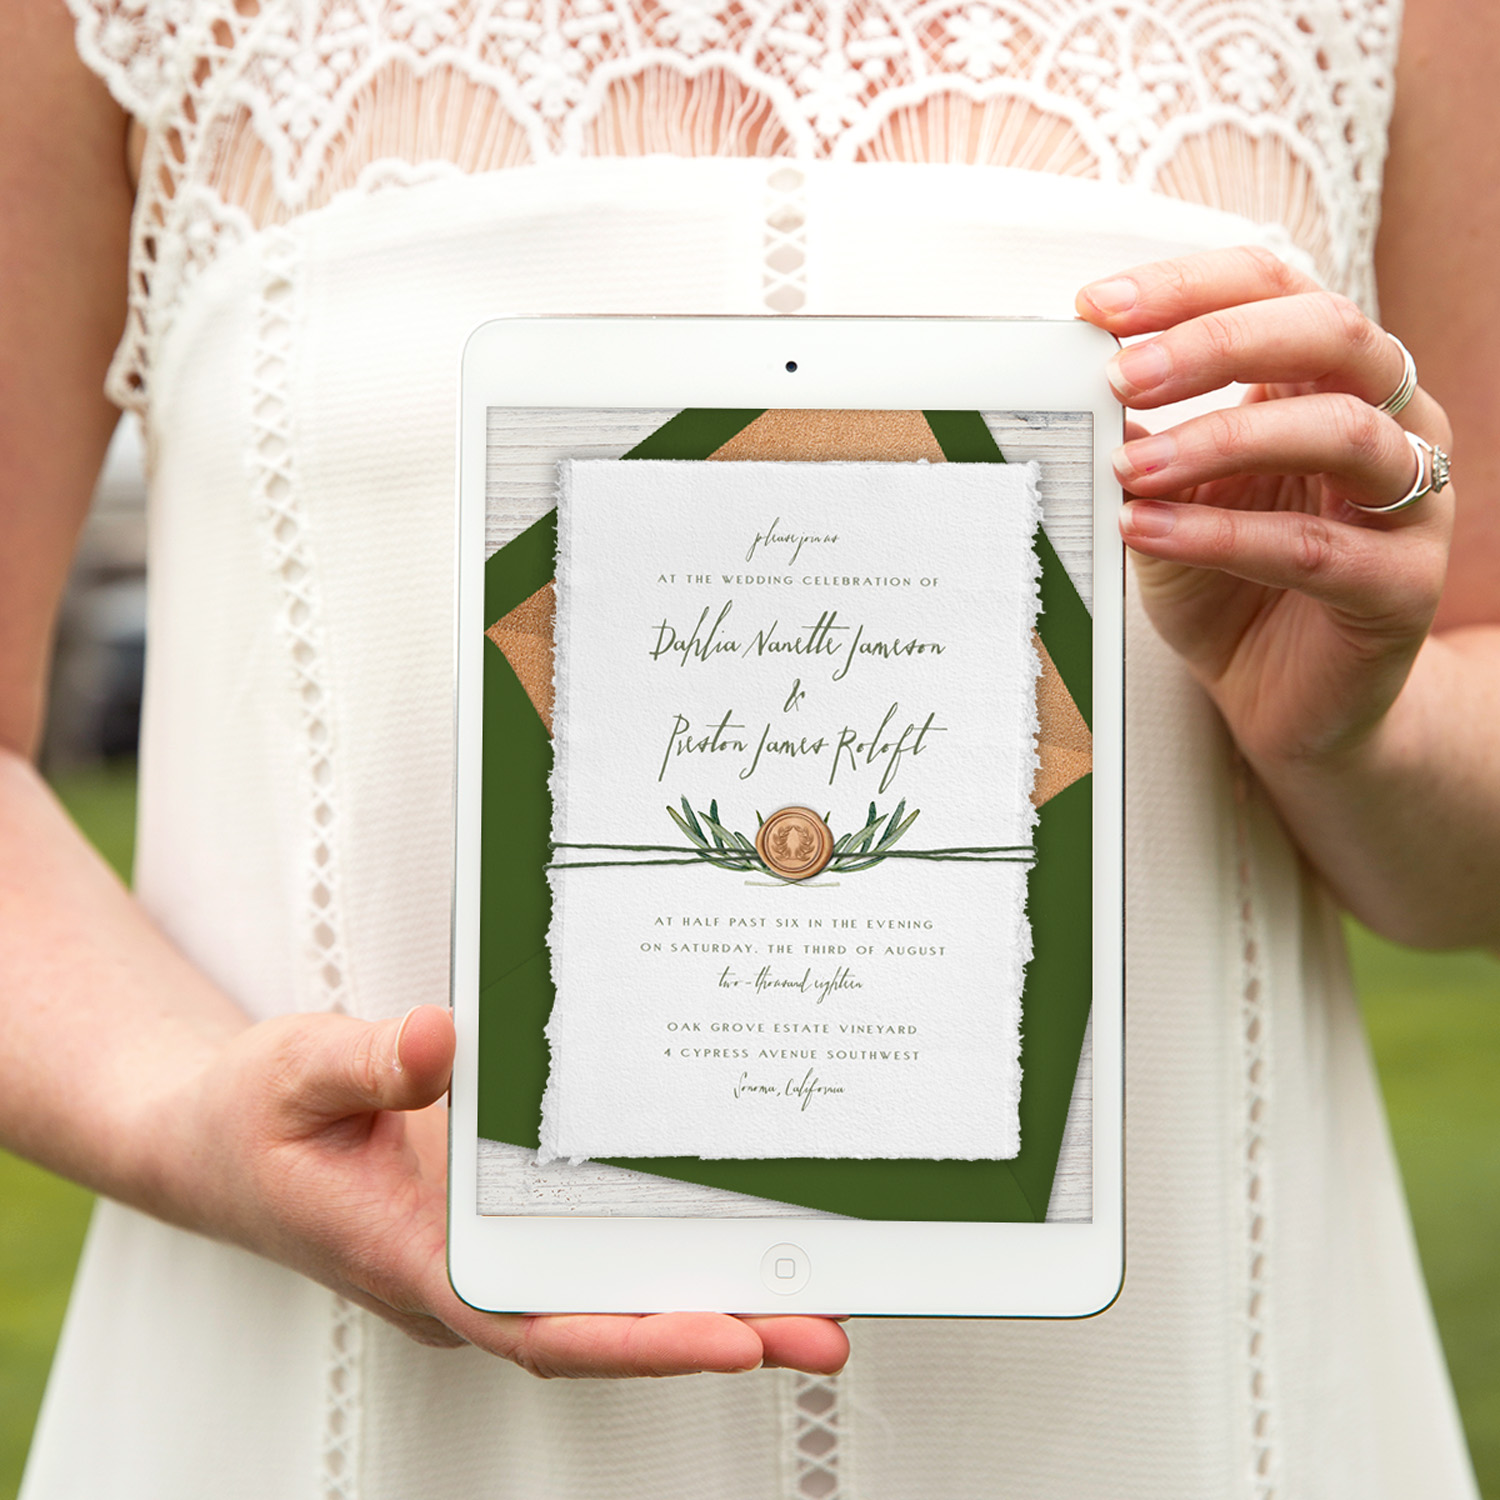 Paperless Ecofriendly Online Invitations from Greenvelope.com